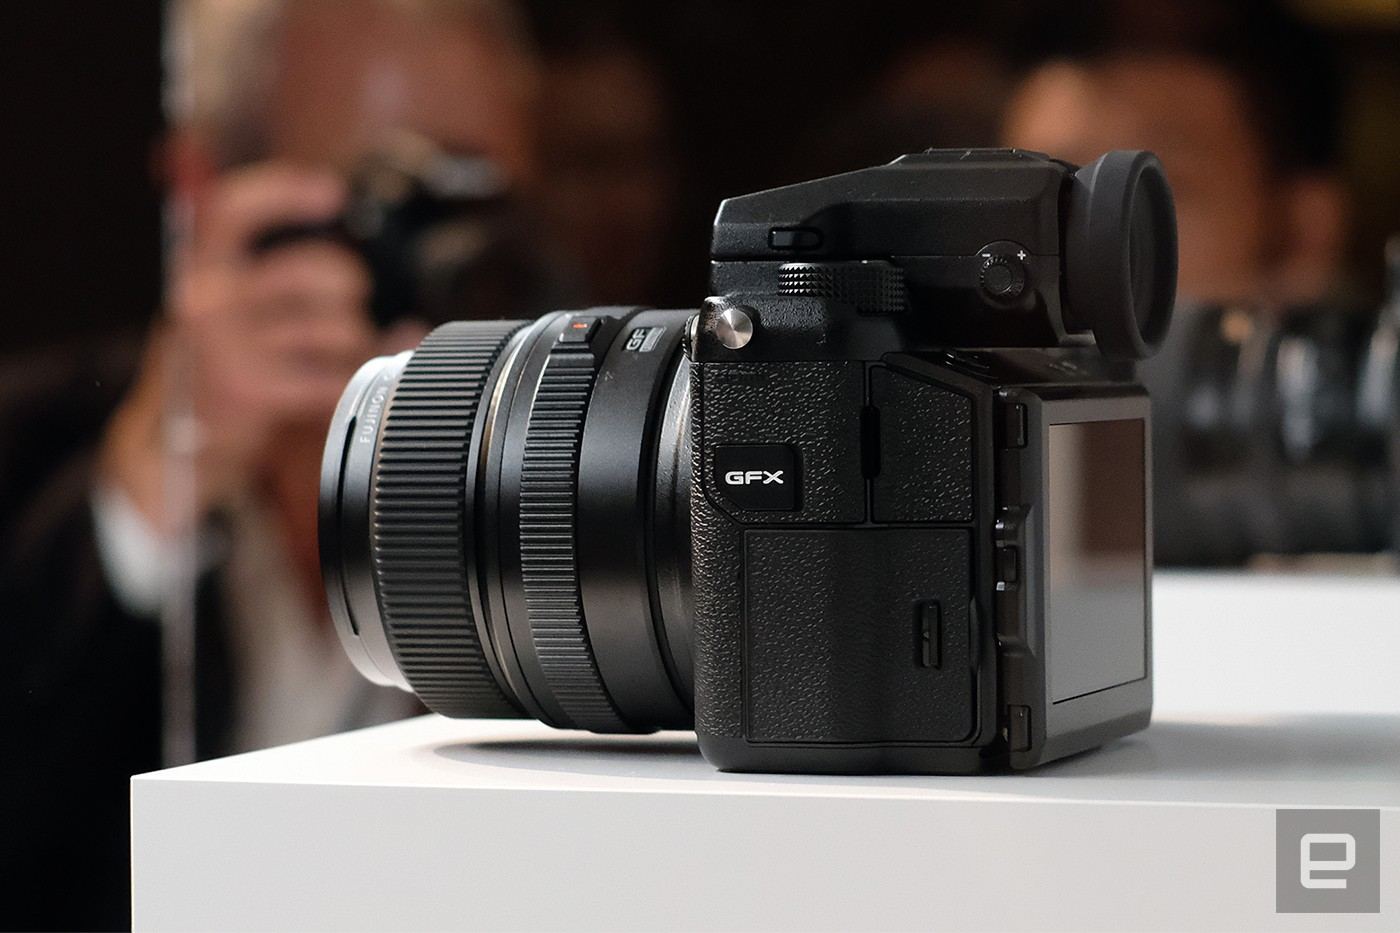 Fujifilm's GFX 50S is a mirrorless camera with a giant sensor